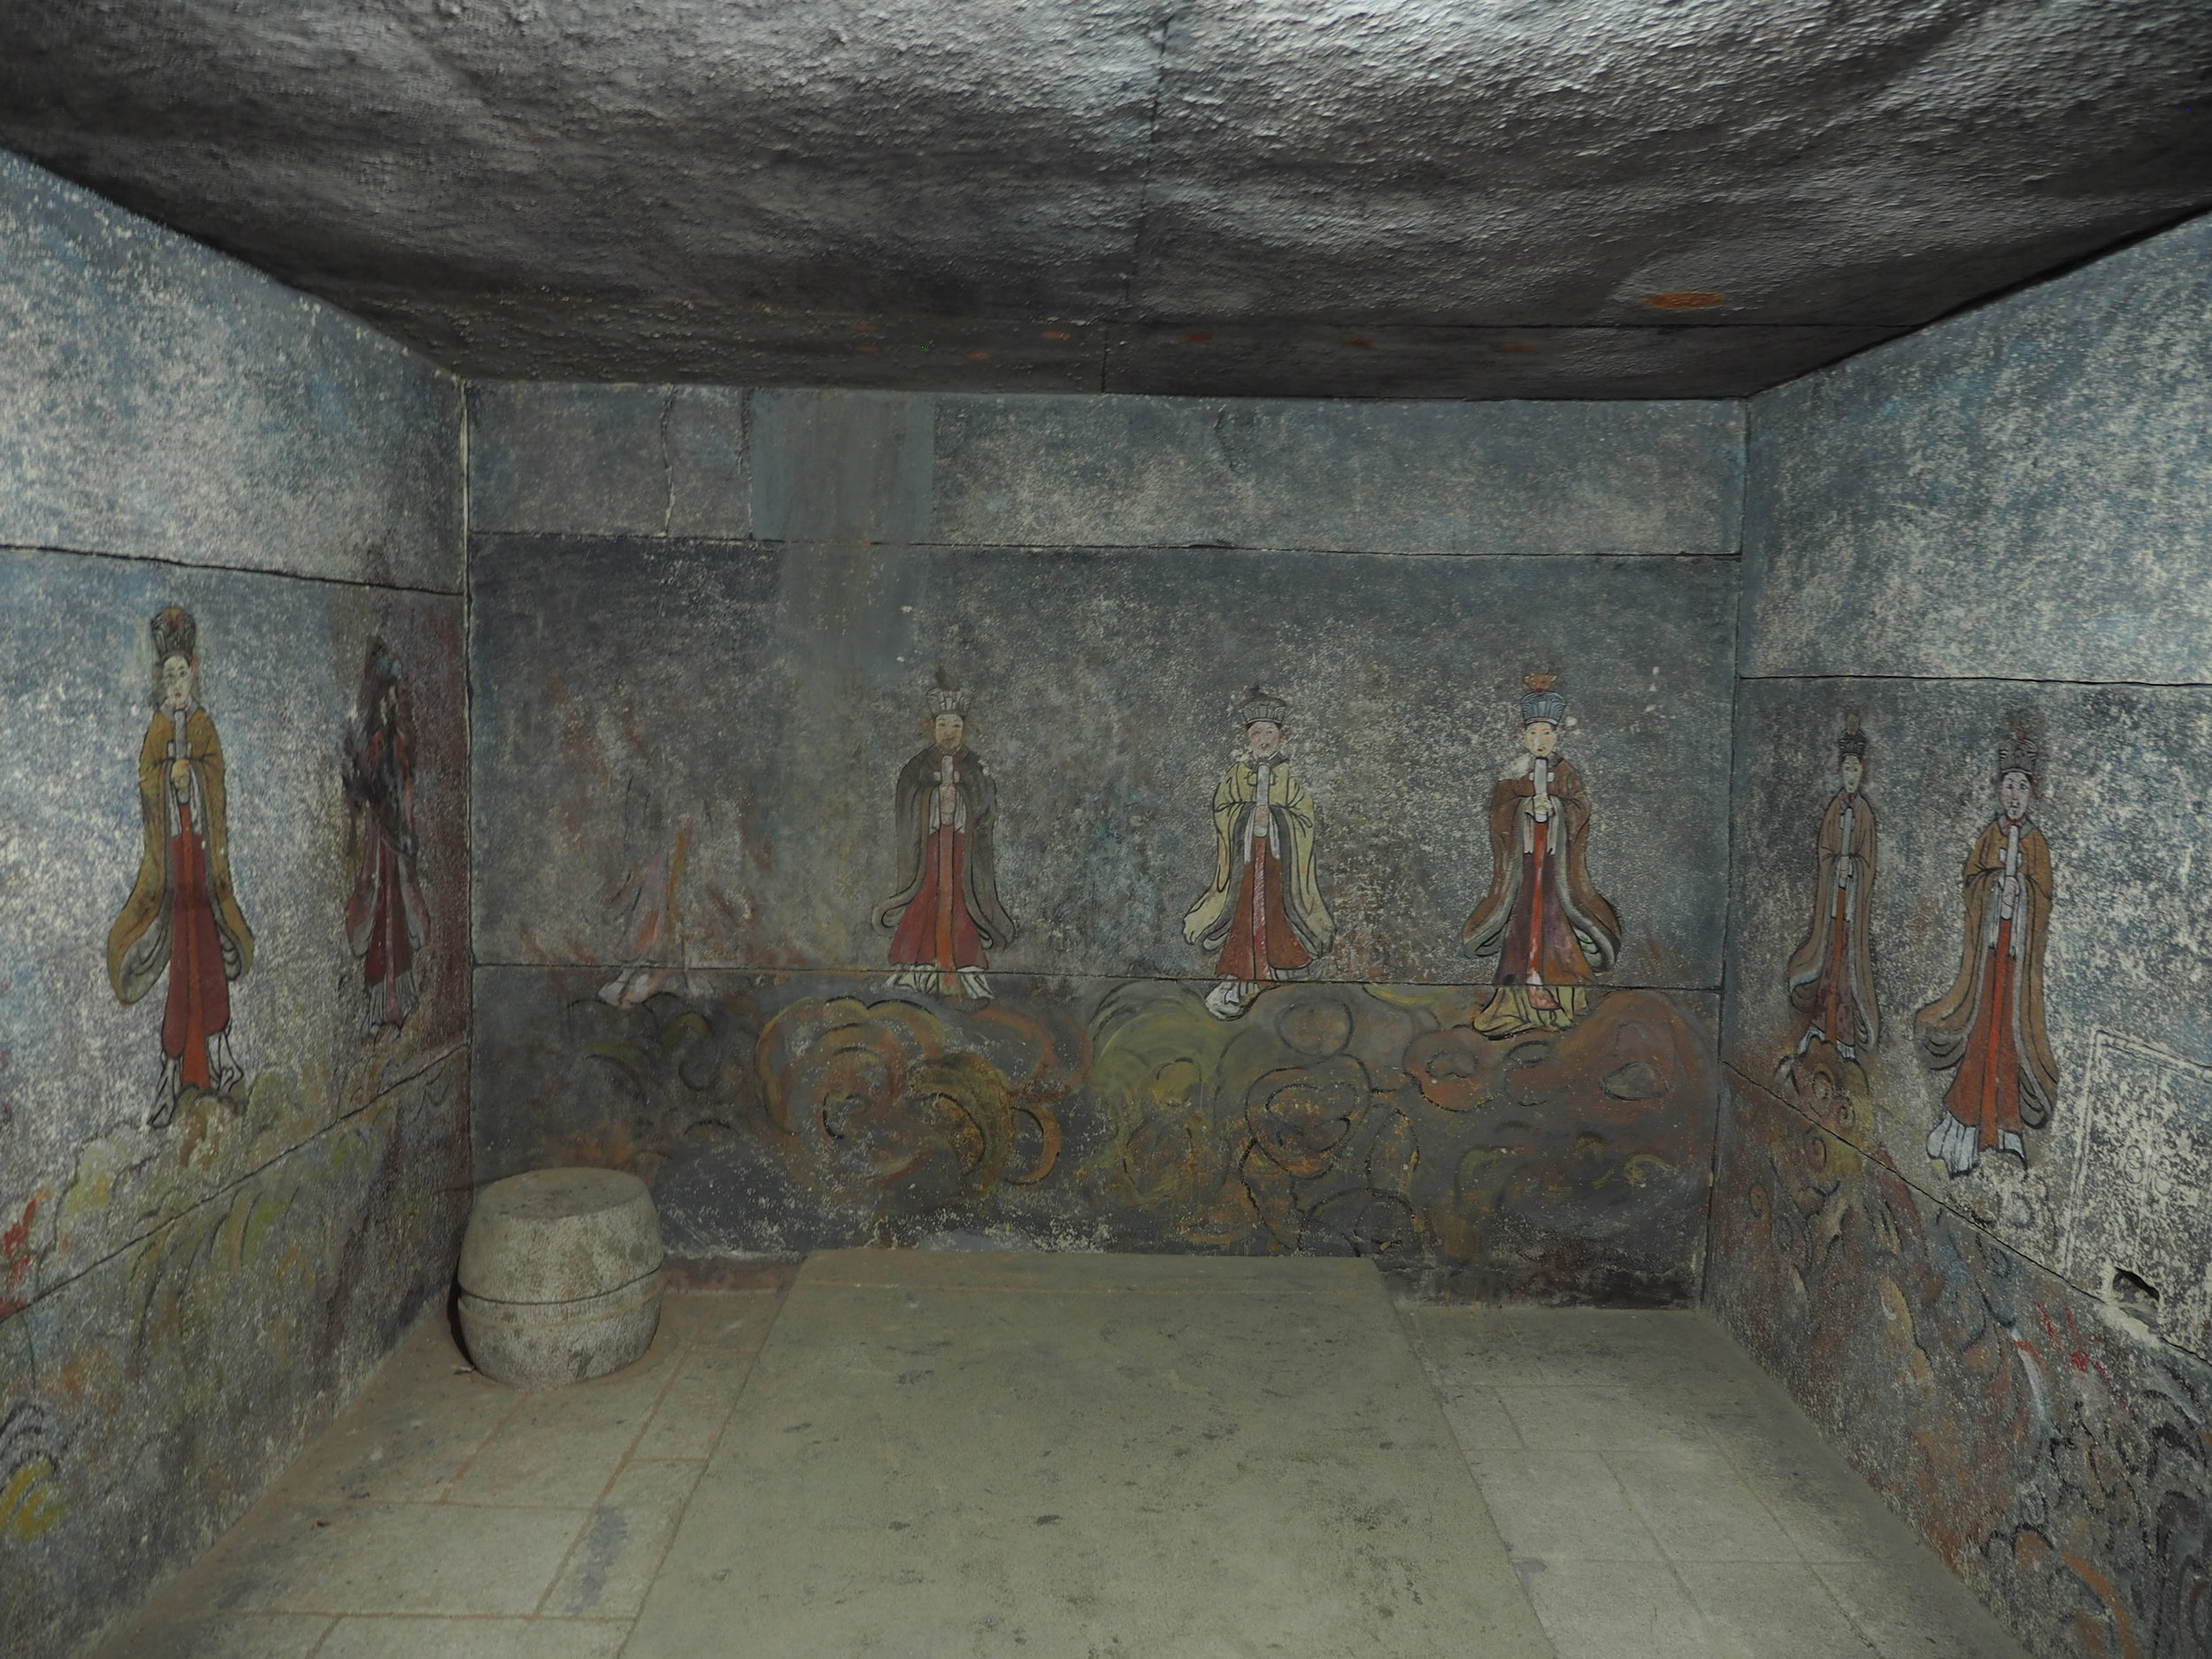 A replica of the King's tomb